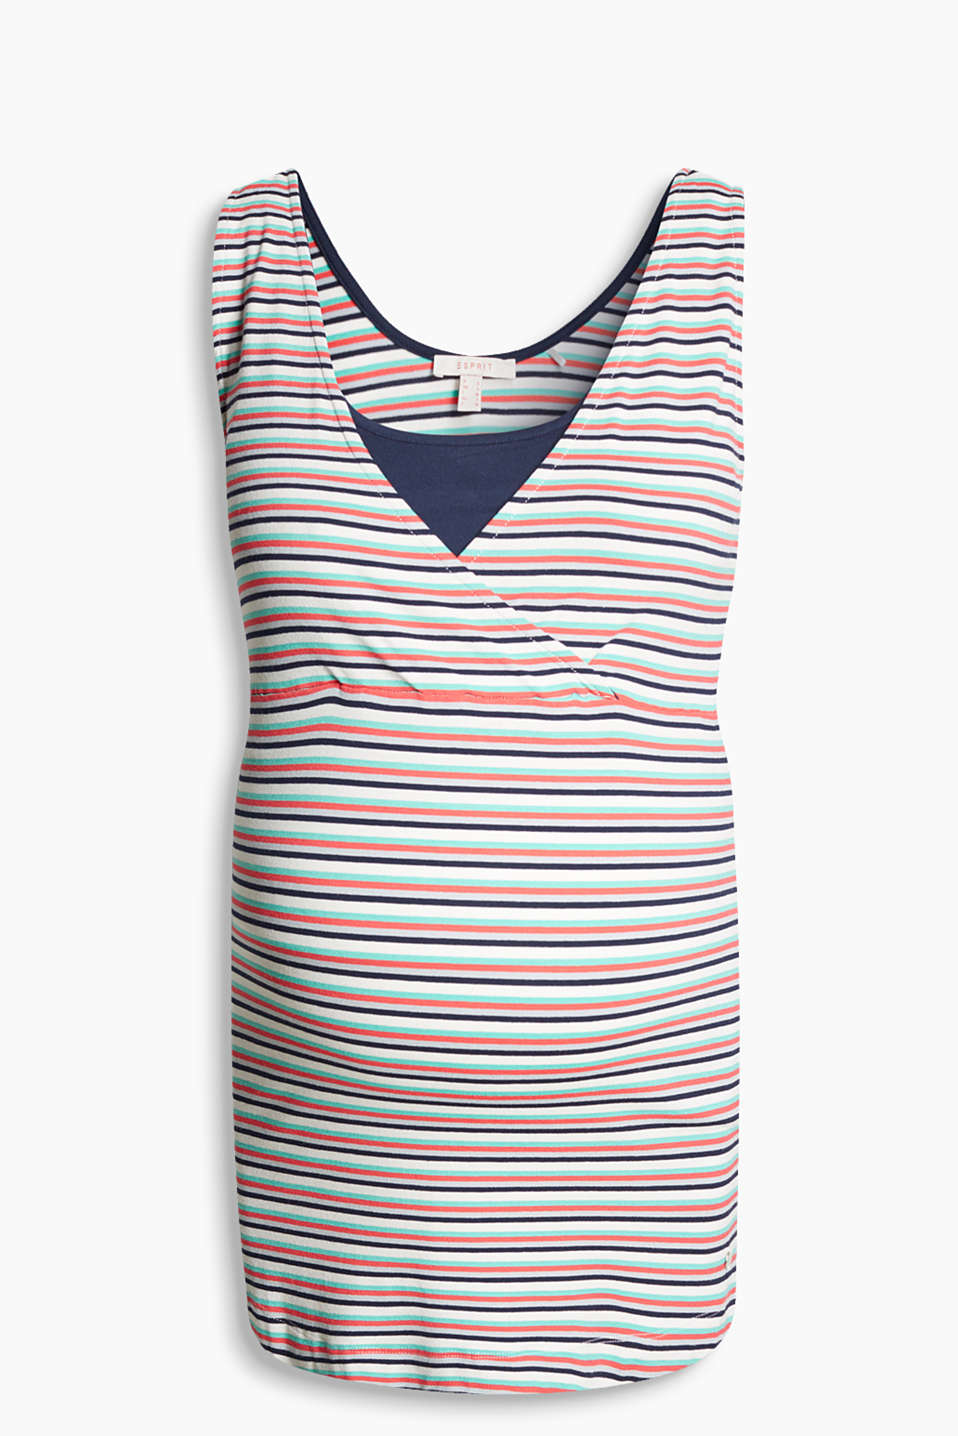 Striped top with an integral front bodice section for breastfeeding, made of exquisite stretch jersey